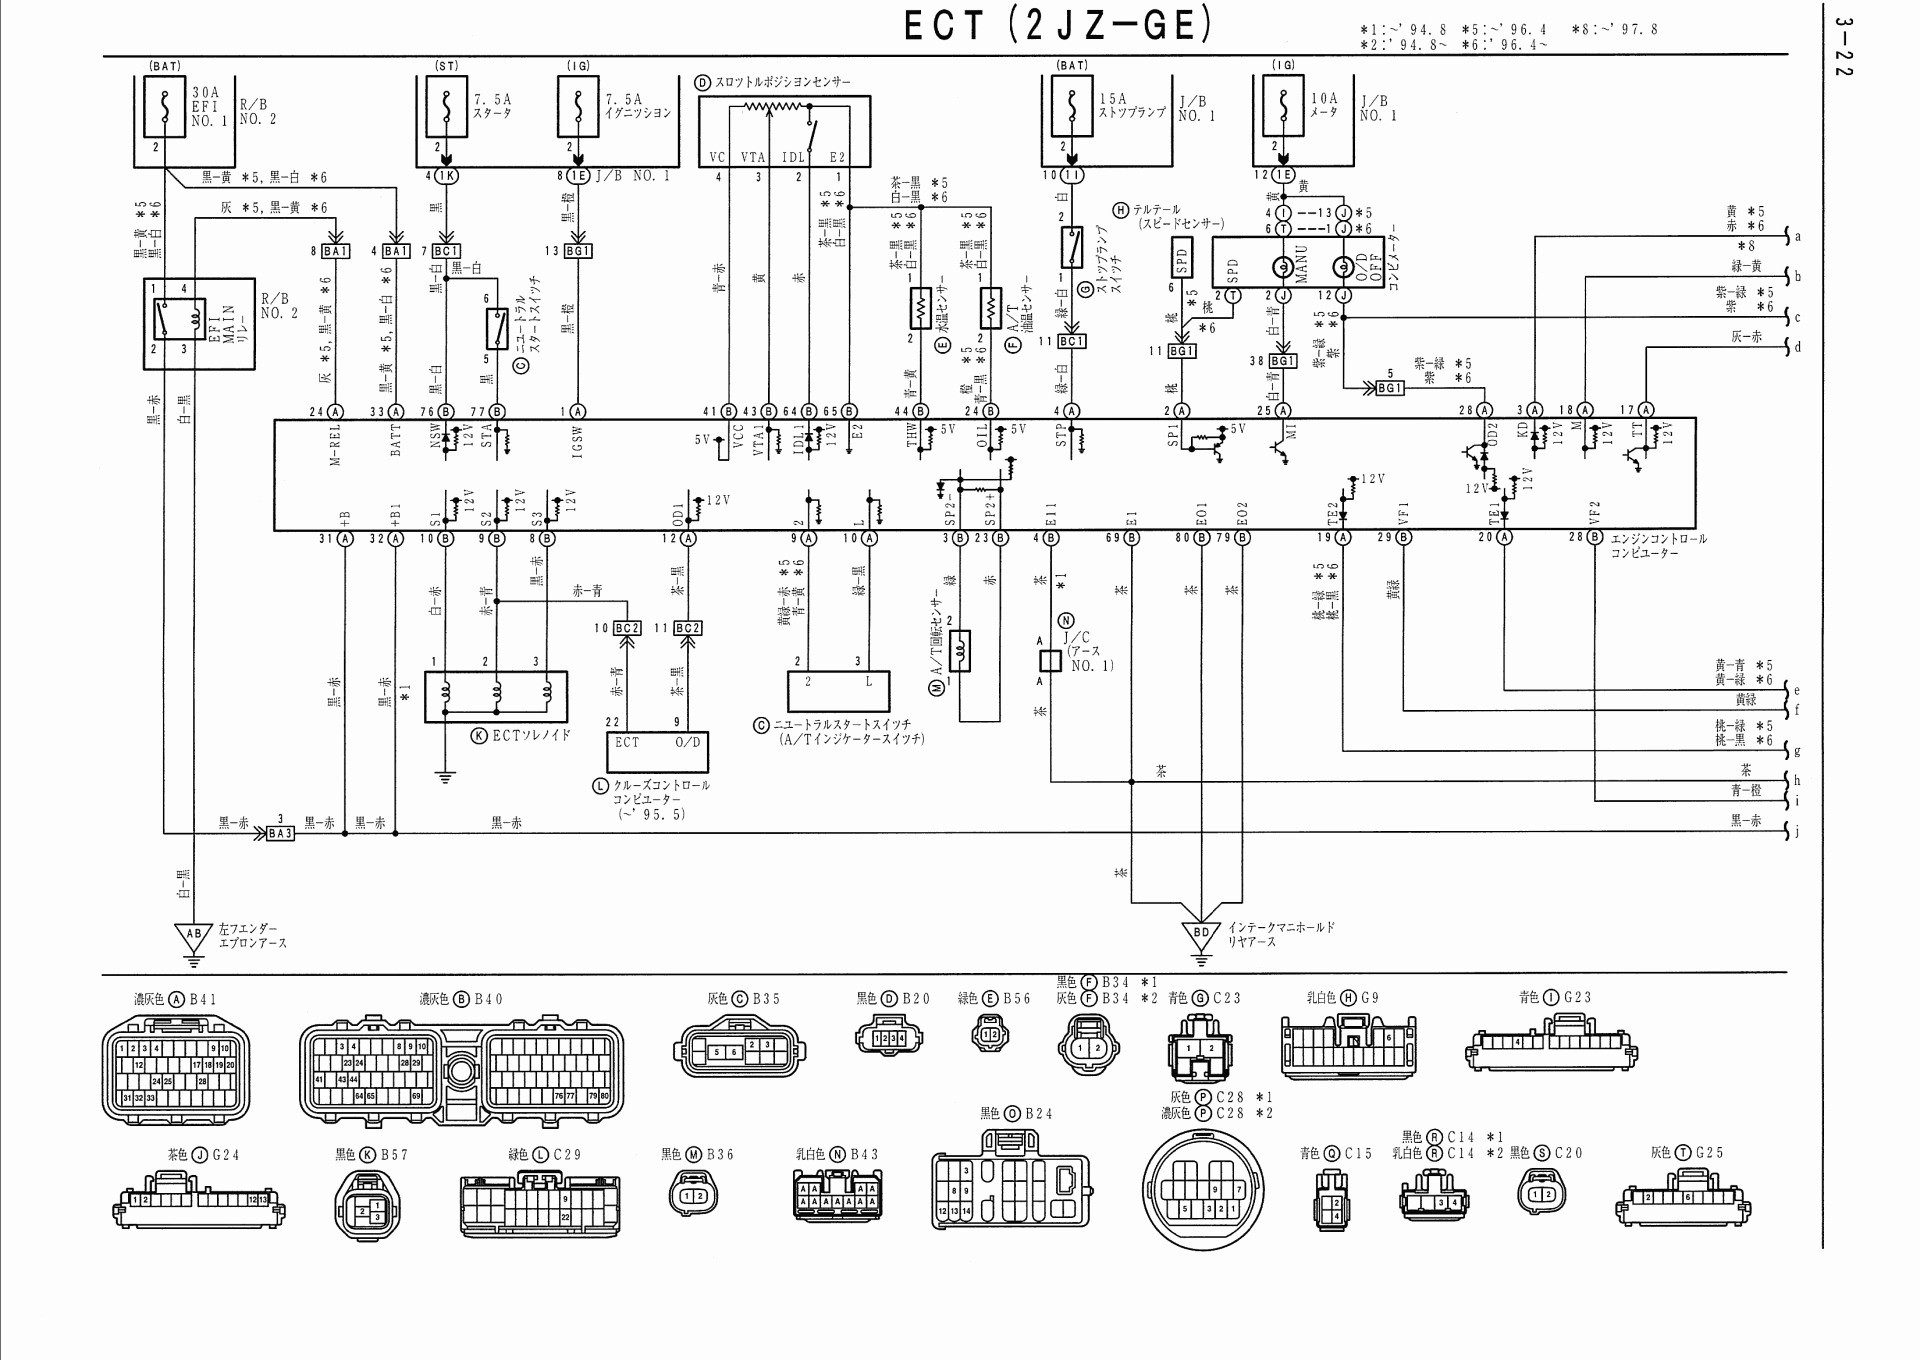 1993 Bmw 525i Wiring Diagram - DIY Wiring Diagrams •